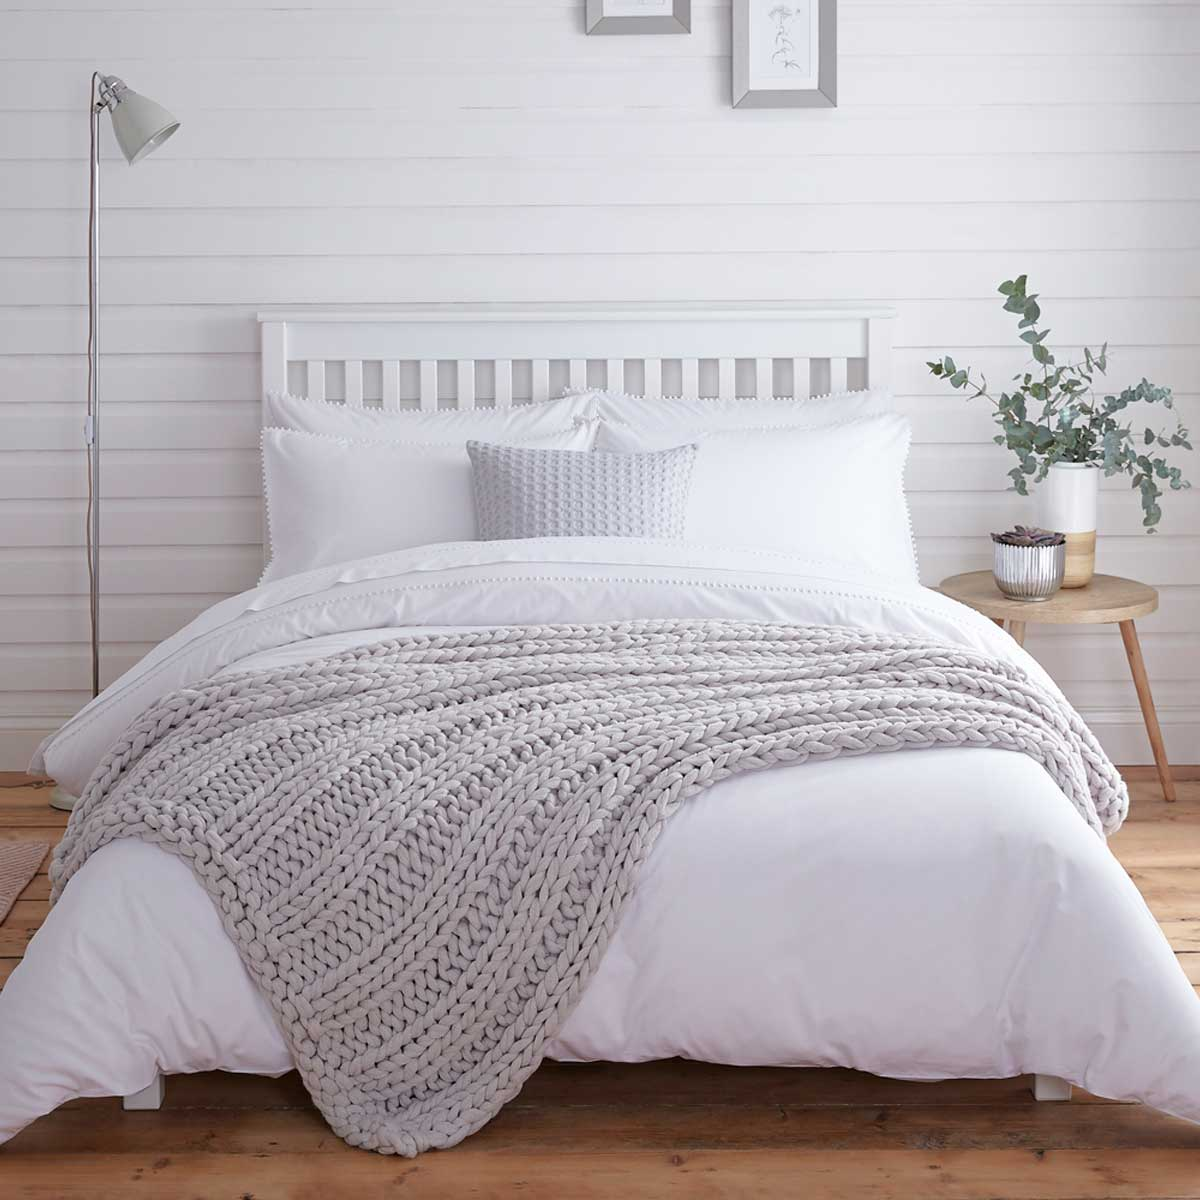 How to Buy Comfortable and Luxury Bedding for Your Bedroom